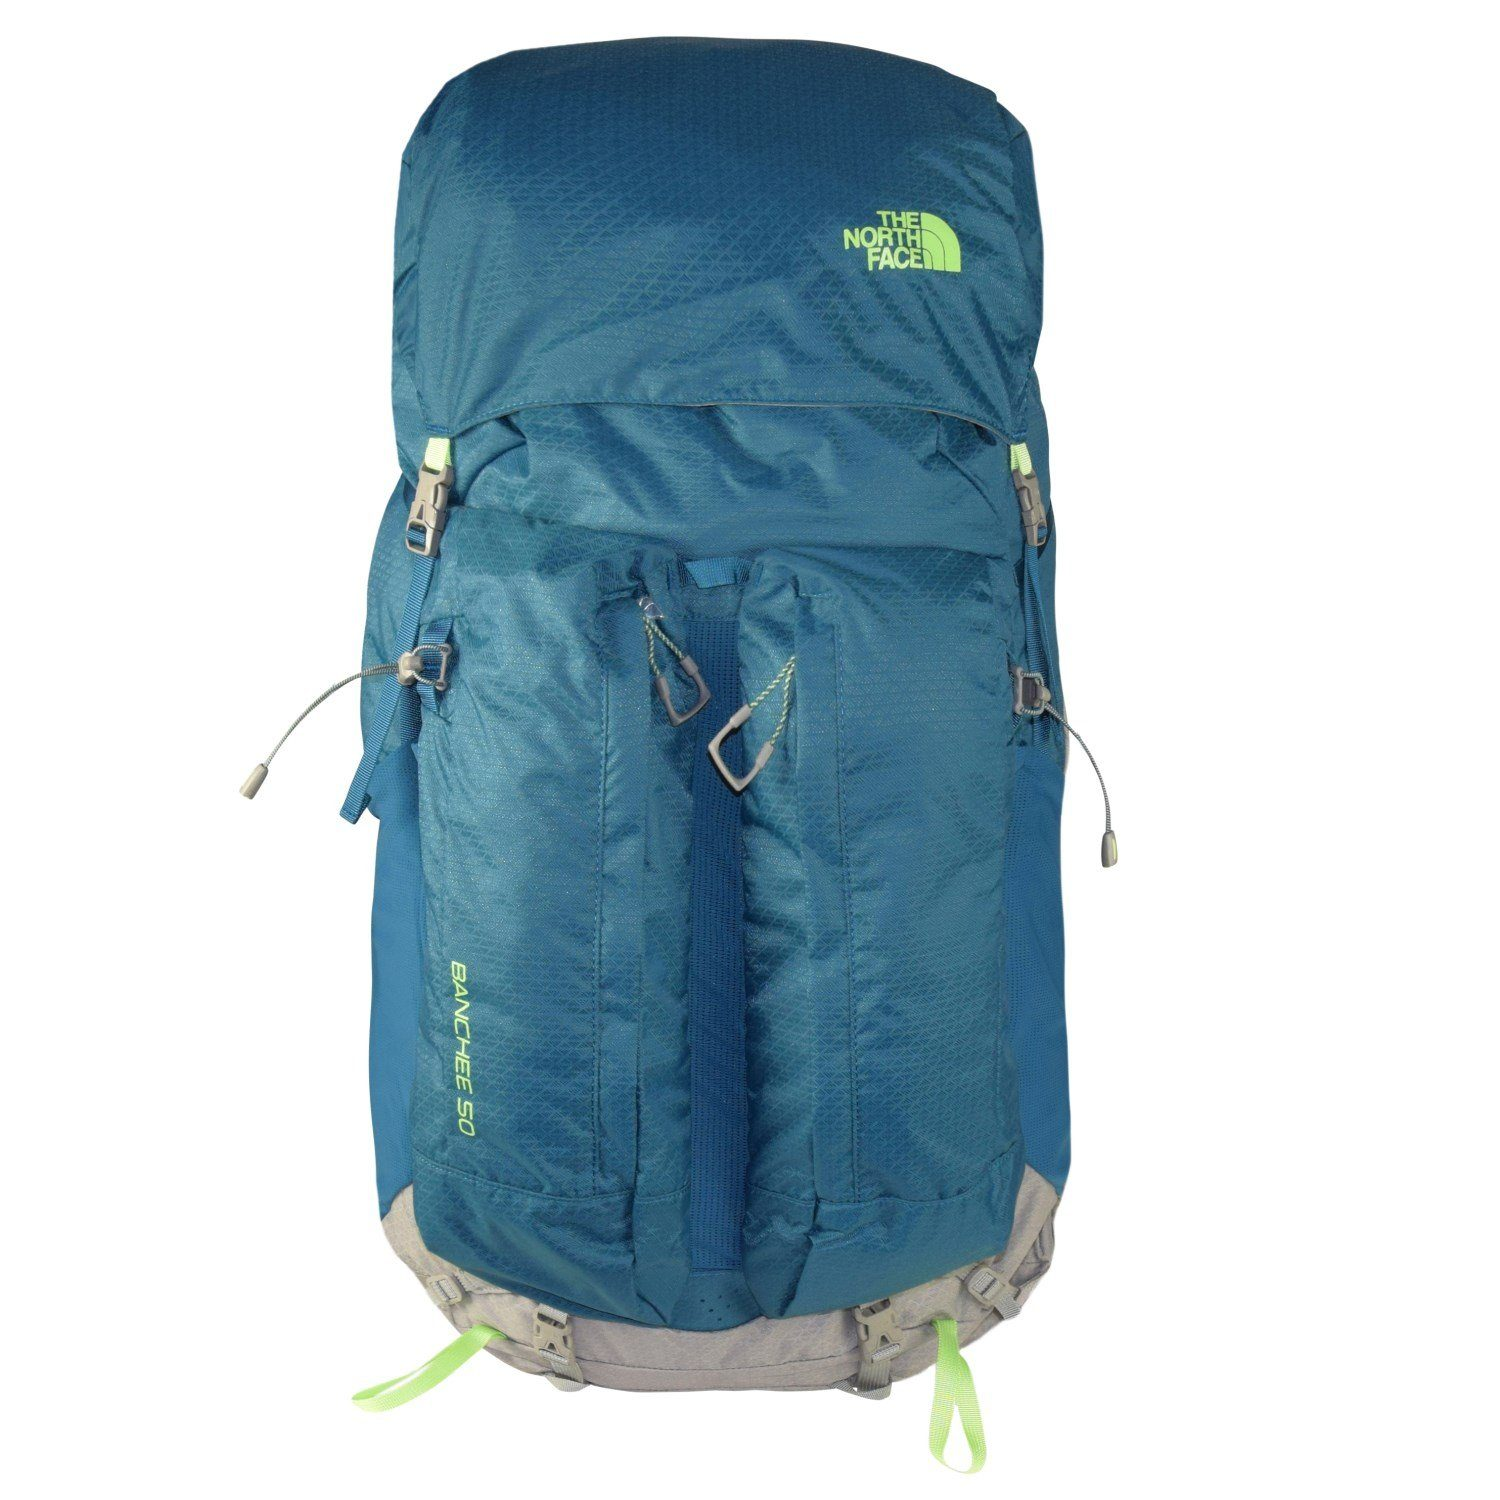 The North Face Outdoor Women's Banchee 50 Rucksack 66 cm